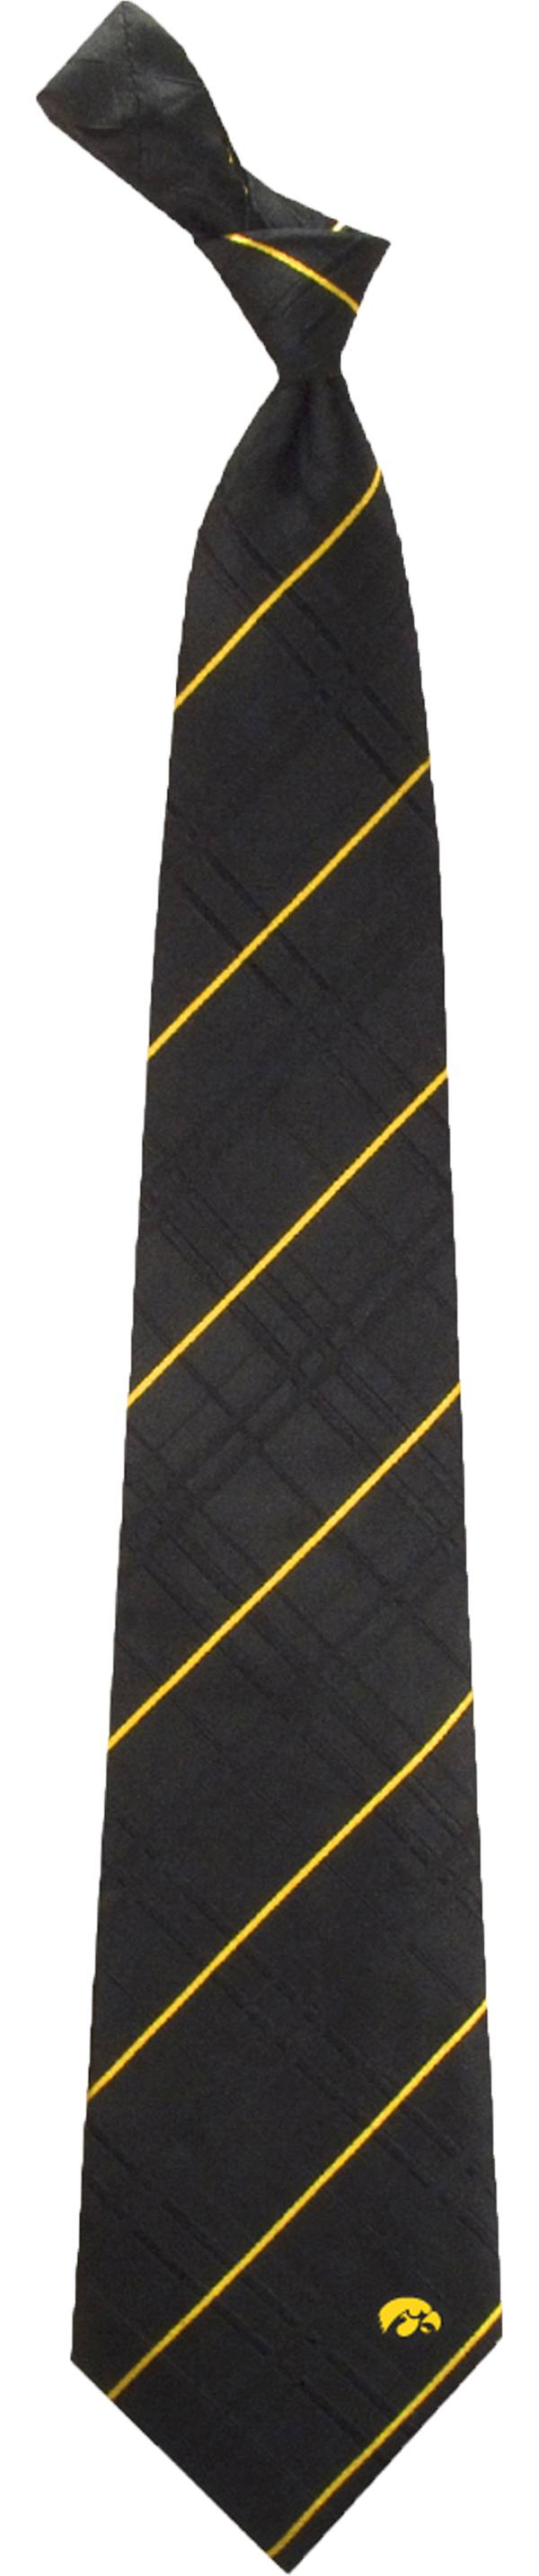 Eagles Wings Iowa Hawkeyes Woven Oxford Necktie product image